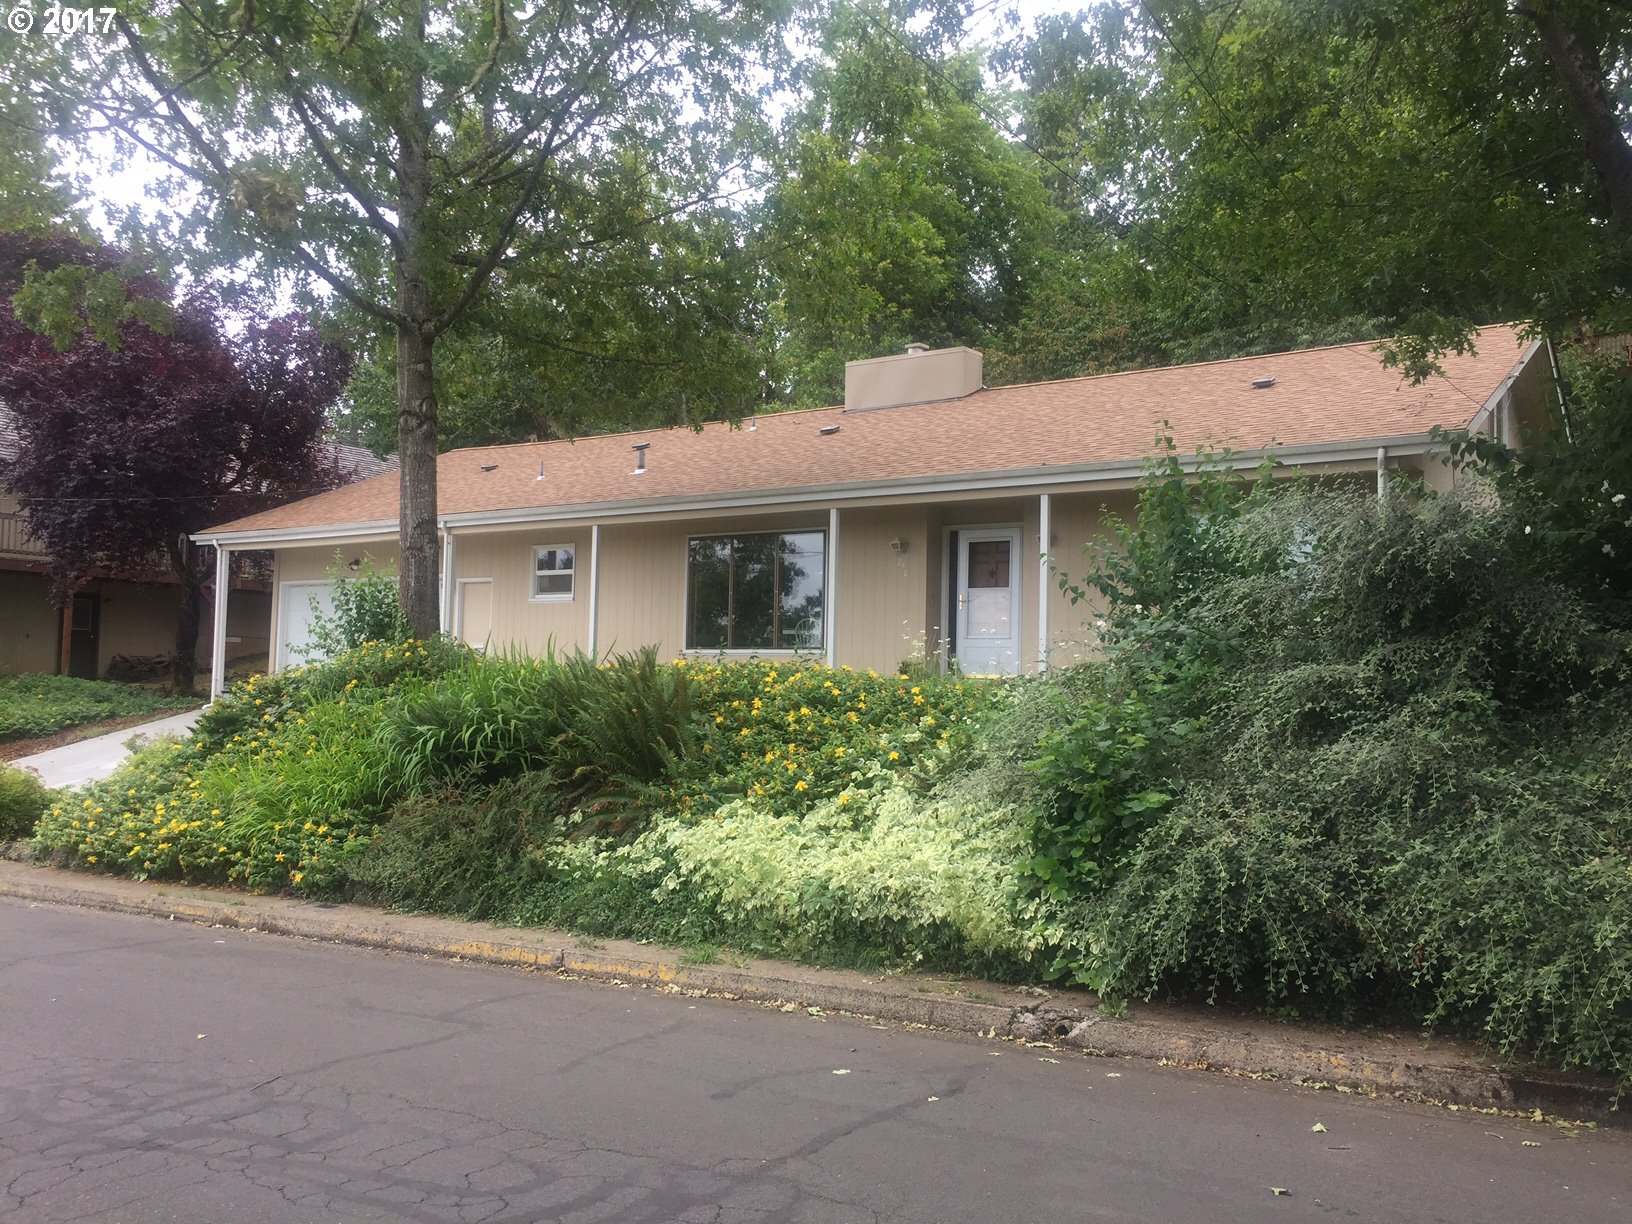 250 W 30TH AVE, Eugene OR 97405